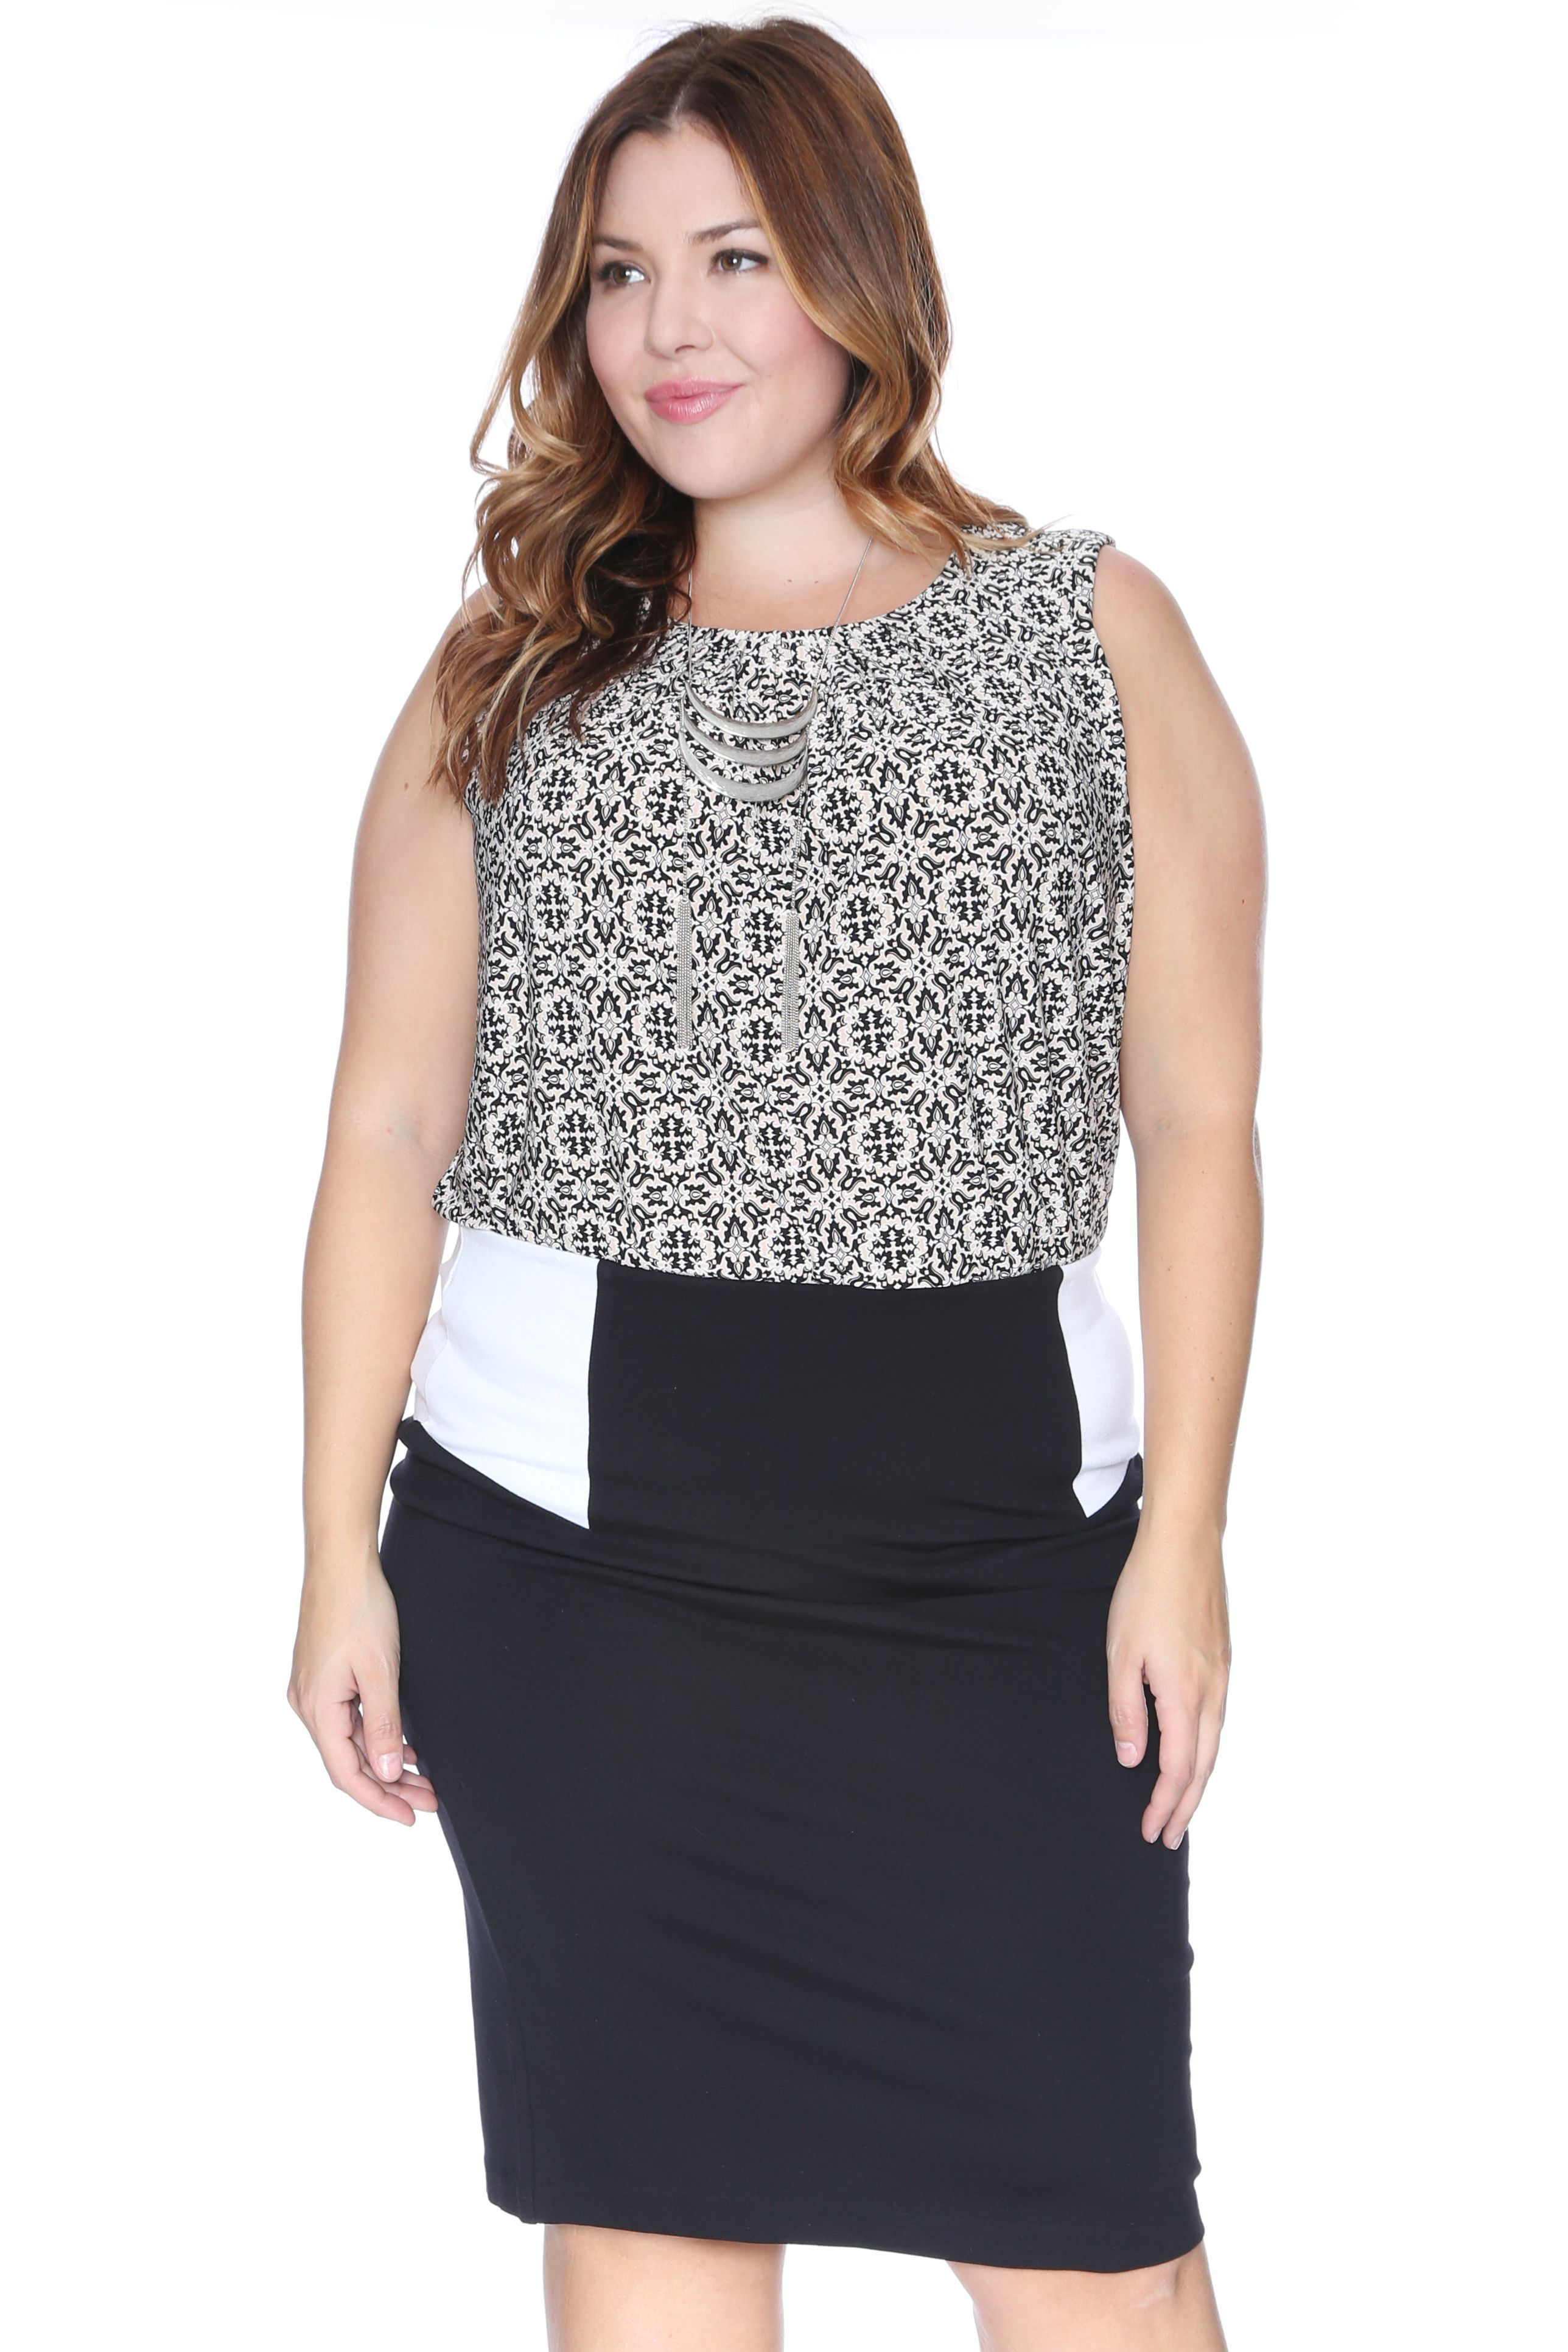 7a5c9be3611e7d Plus Size Colorblock Skirt-Plus size women's color block bodycon pull on pencil  skirt in a comfortable stretch fabric. Pair with a tucked in blouse and  high ...